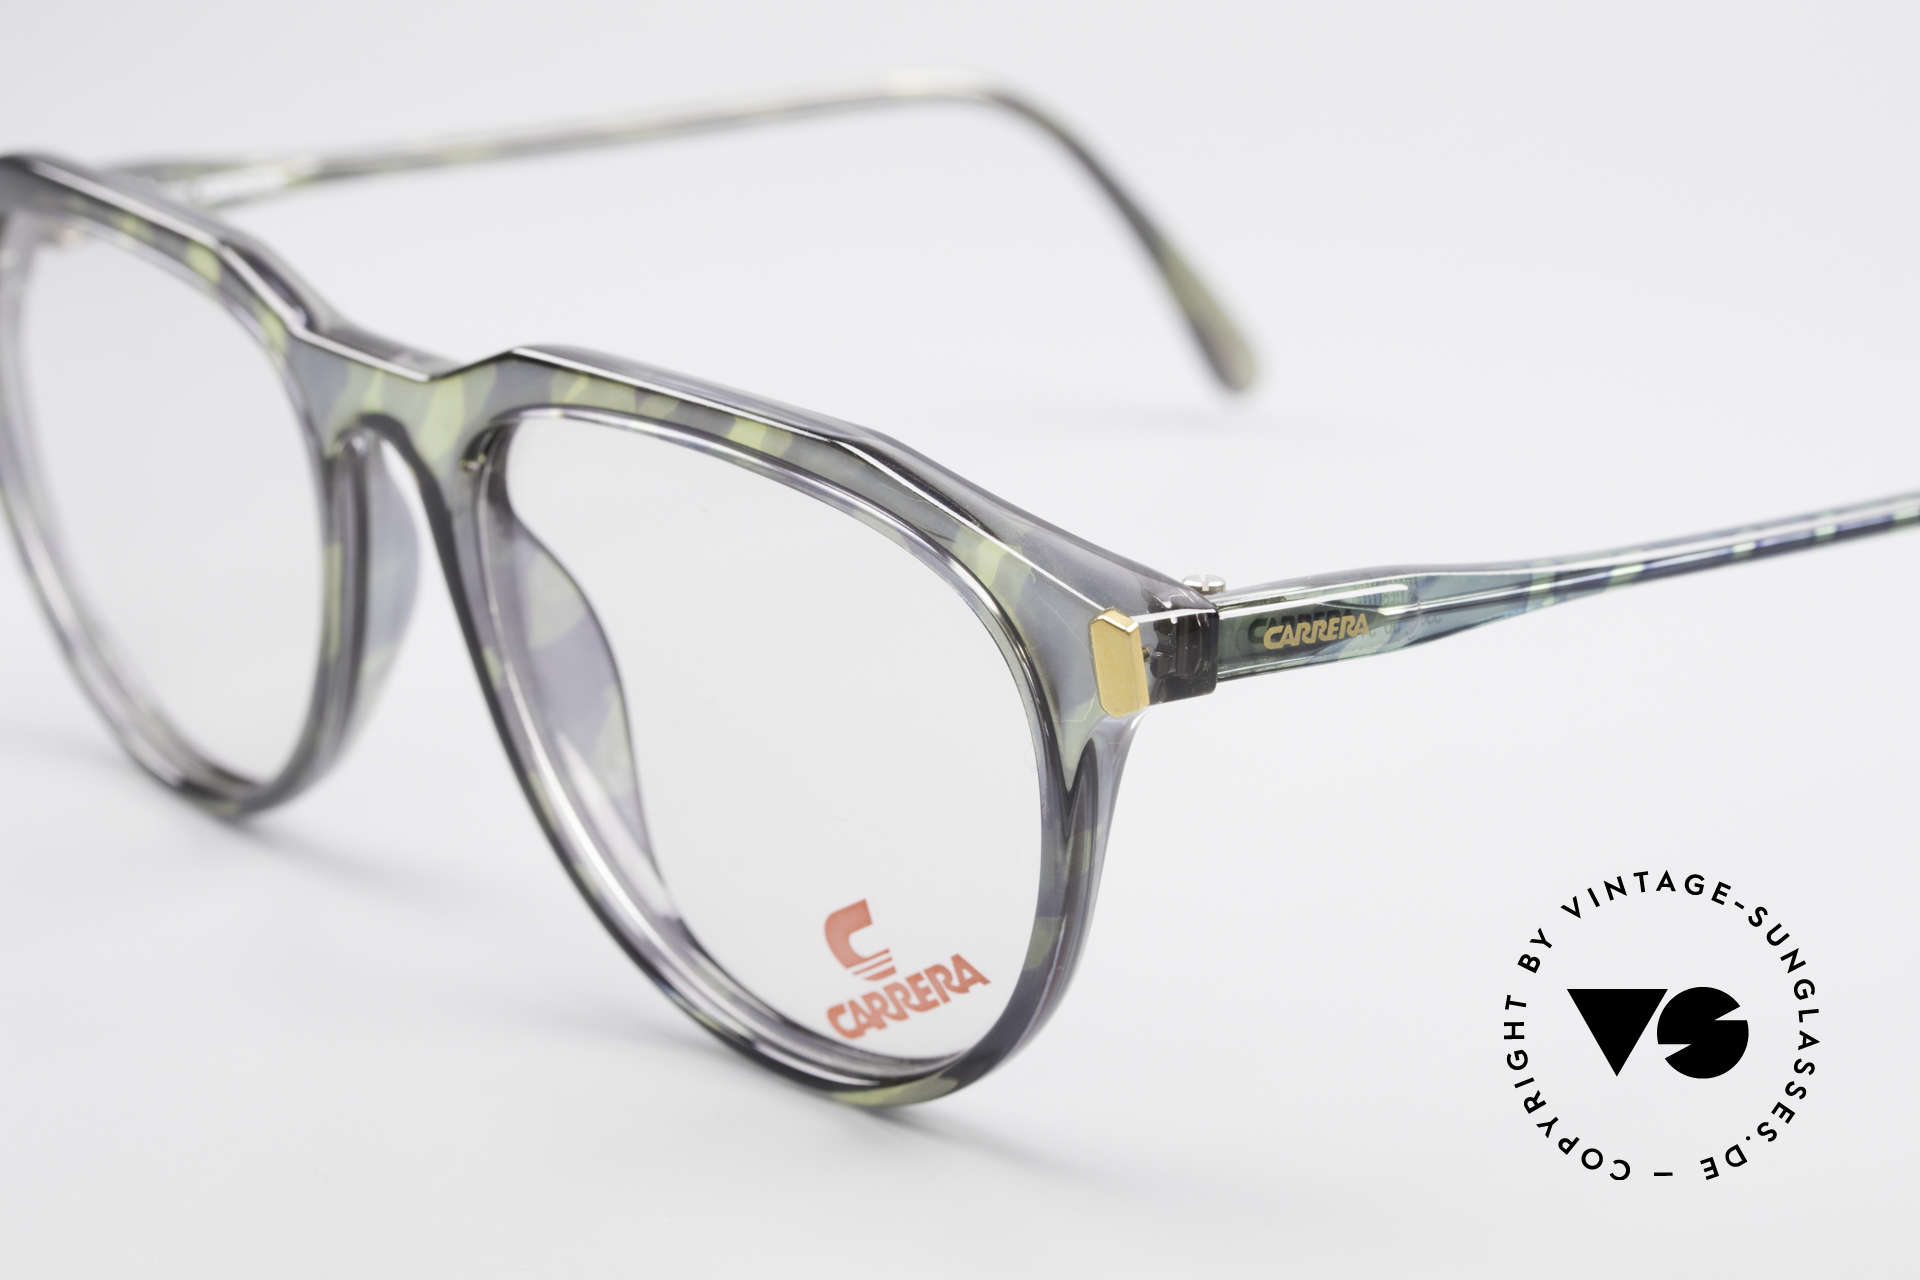 Carrera 5361 90's Optyl Panto Eyeglasses, incredible OPTYL material does not seem to age!, Made for Men